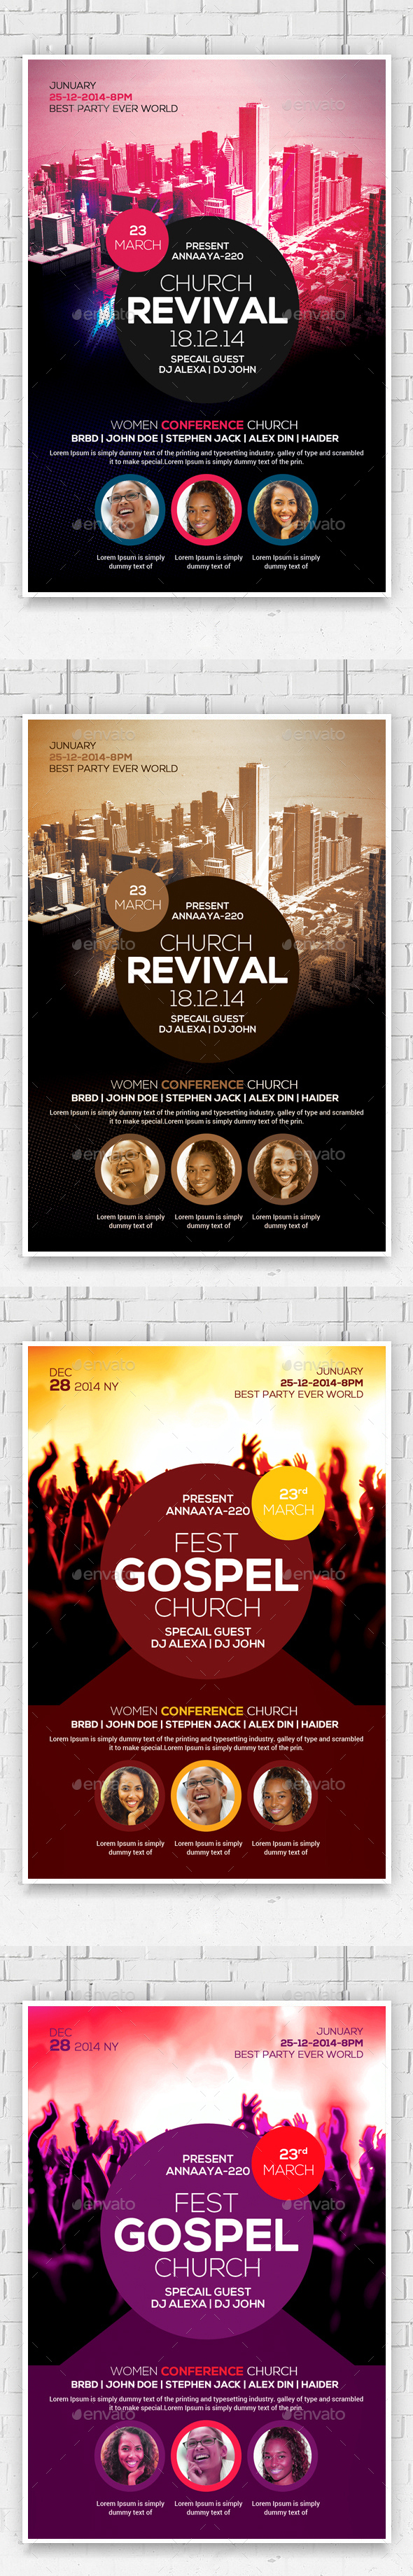 Revival in the City Church Flyers Bundle - Church Flyers